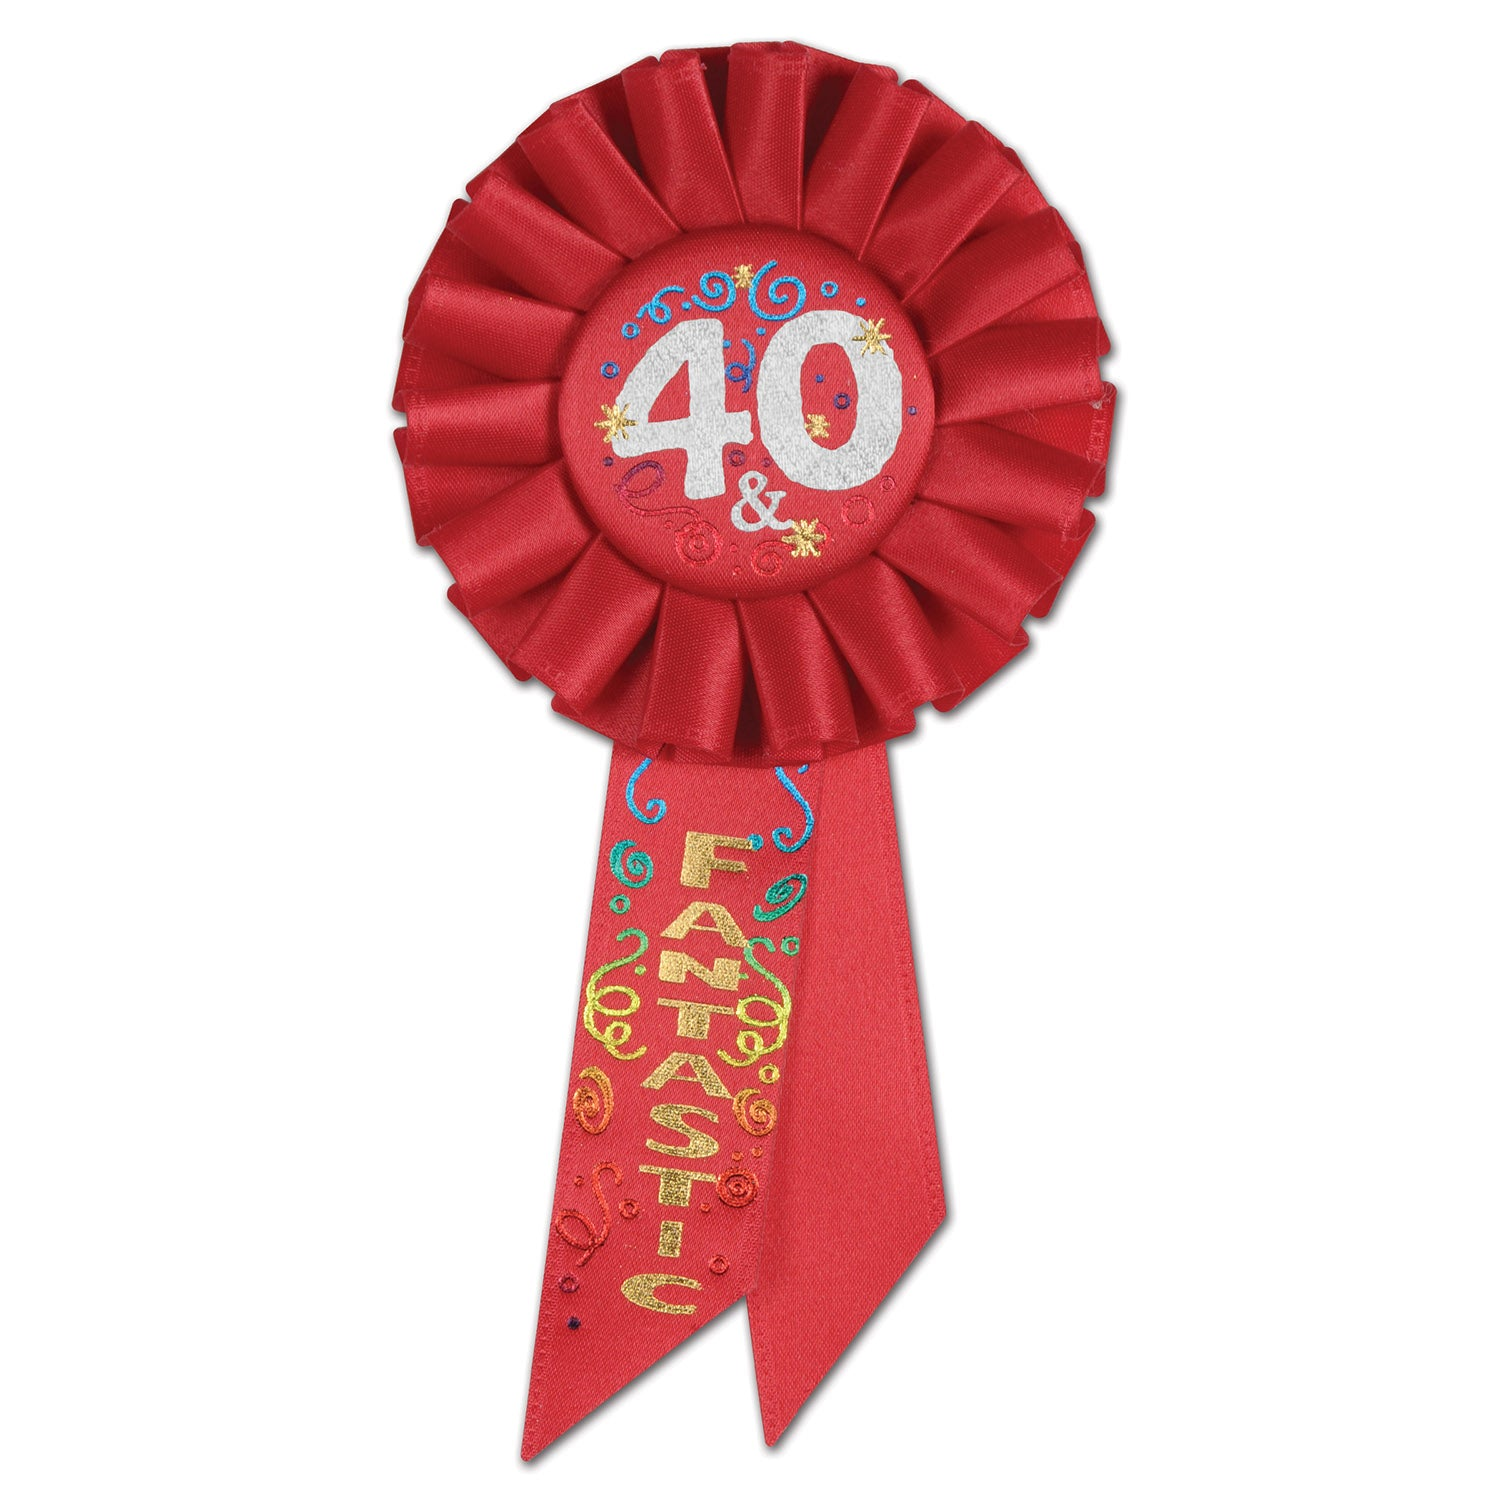 40 & Fantastic Rosette by Beistle - 40th Birthday Party Decorations